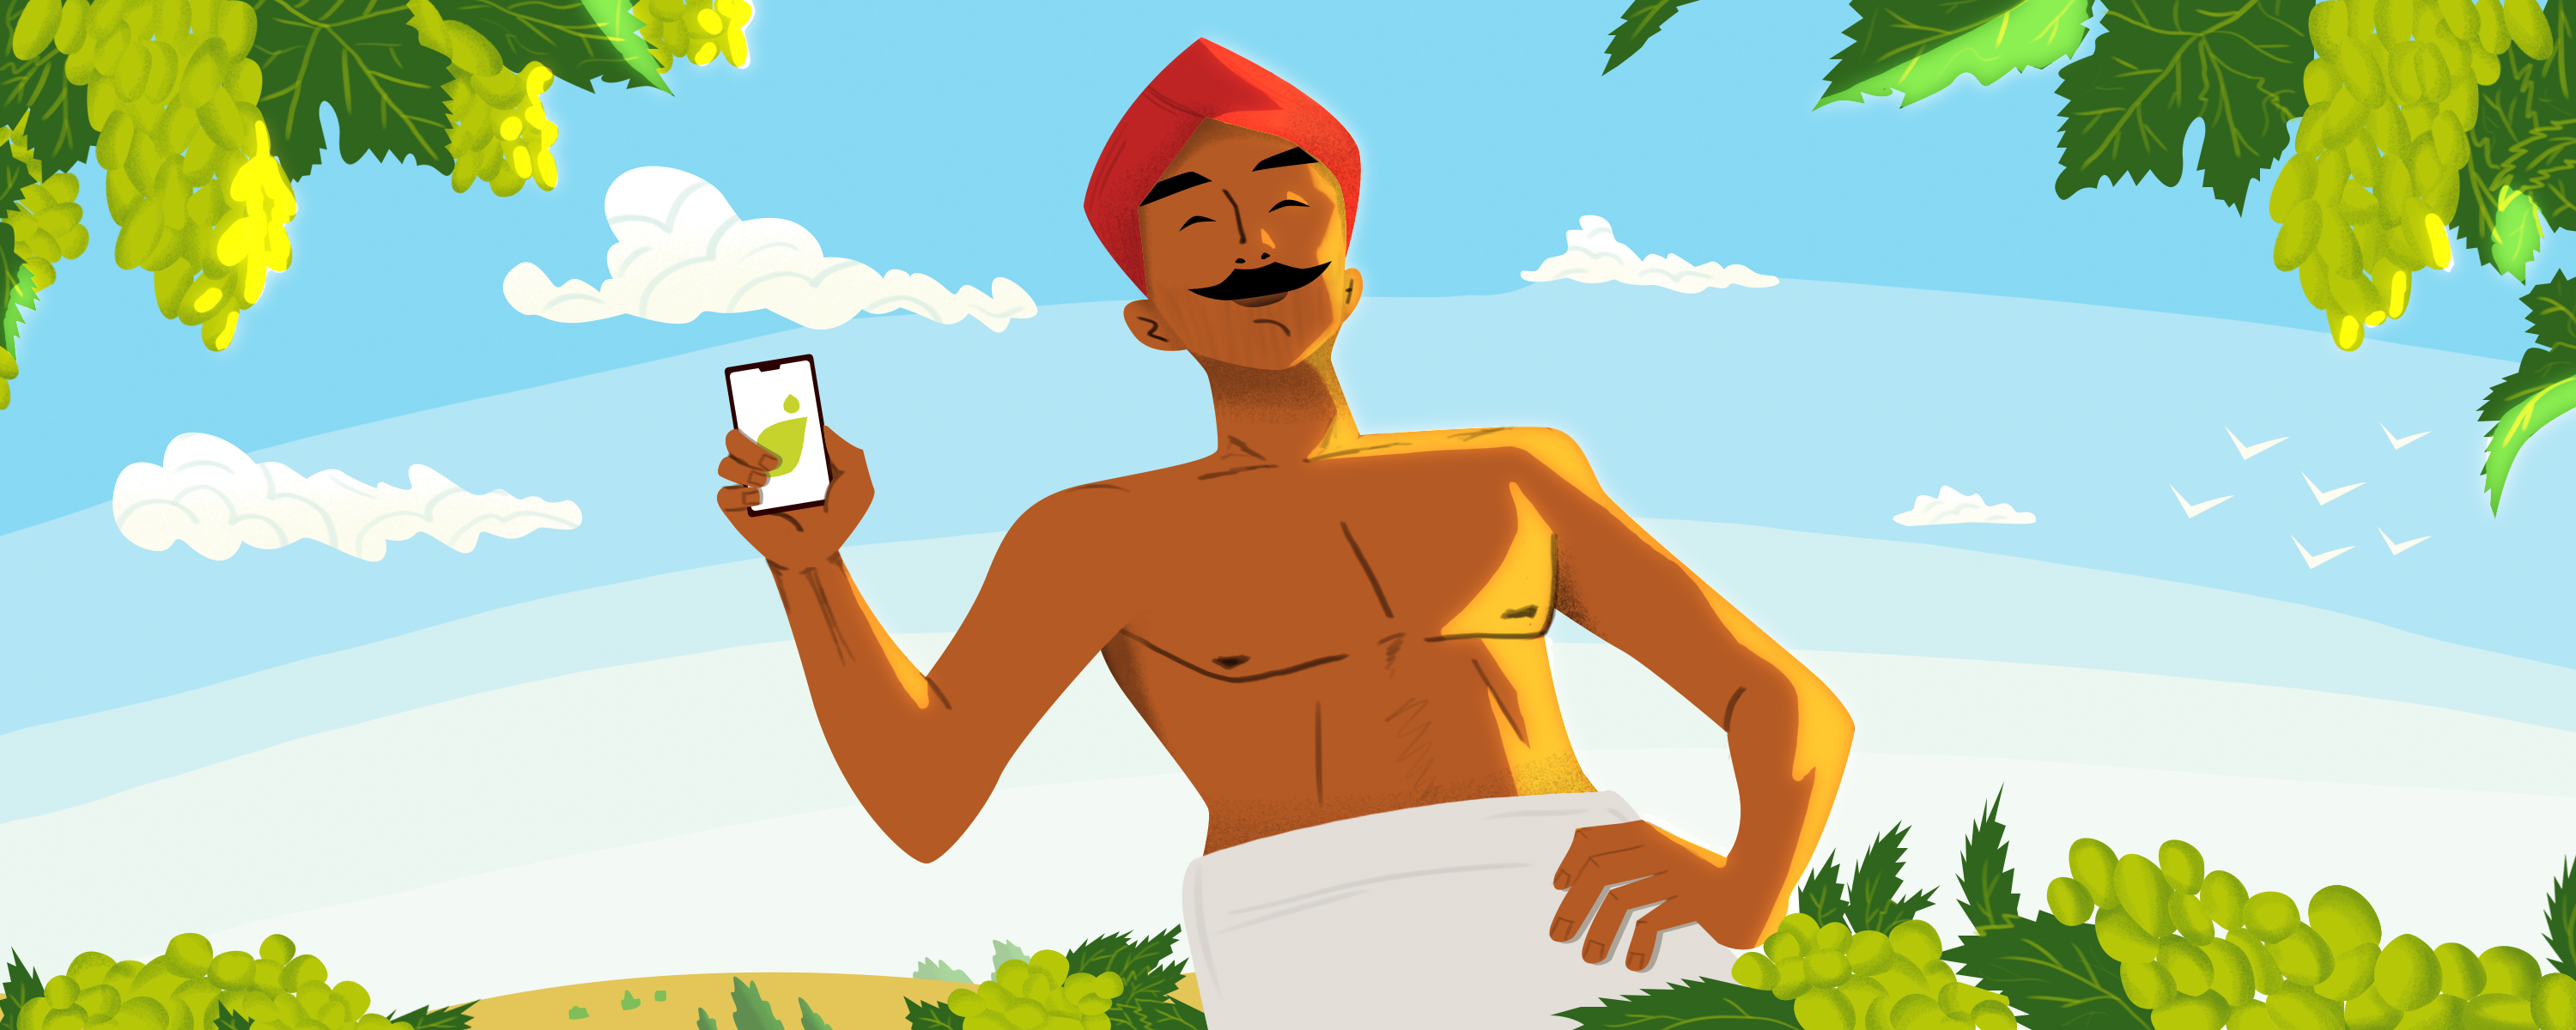 KisanHub and the making of India's digital farmer